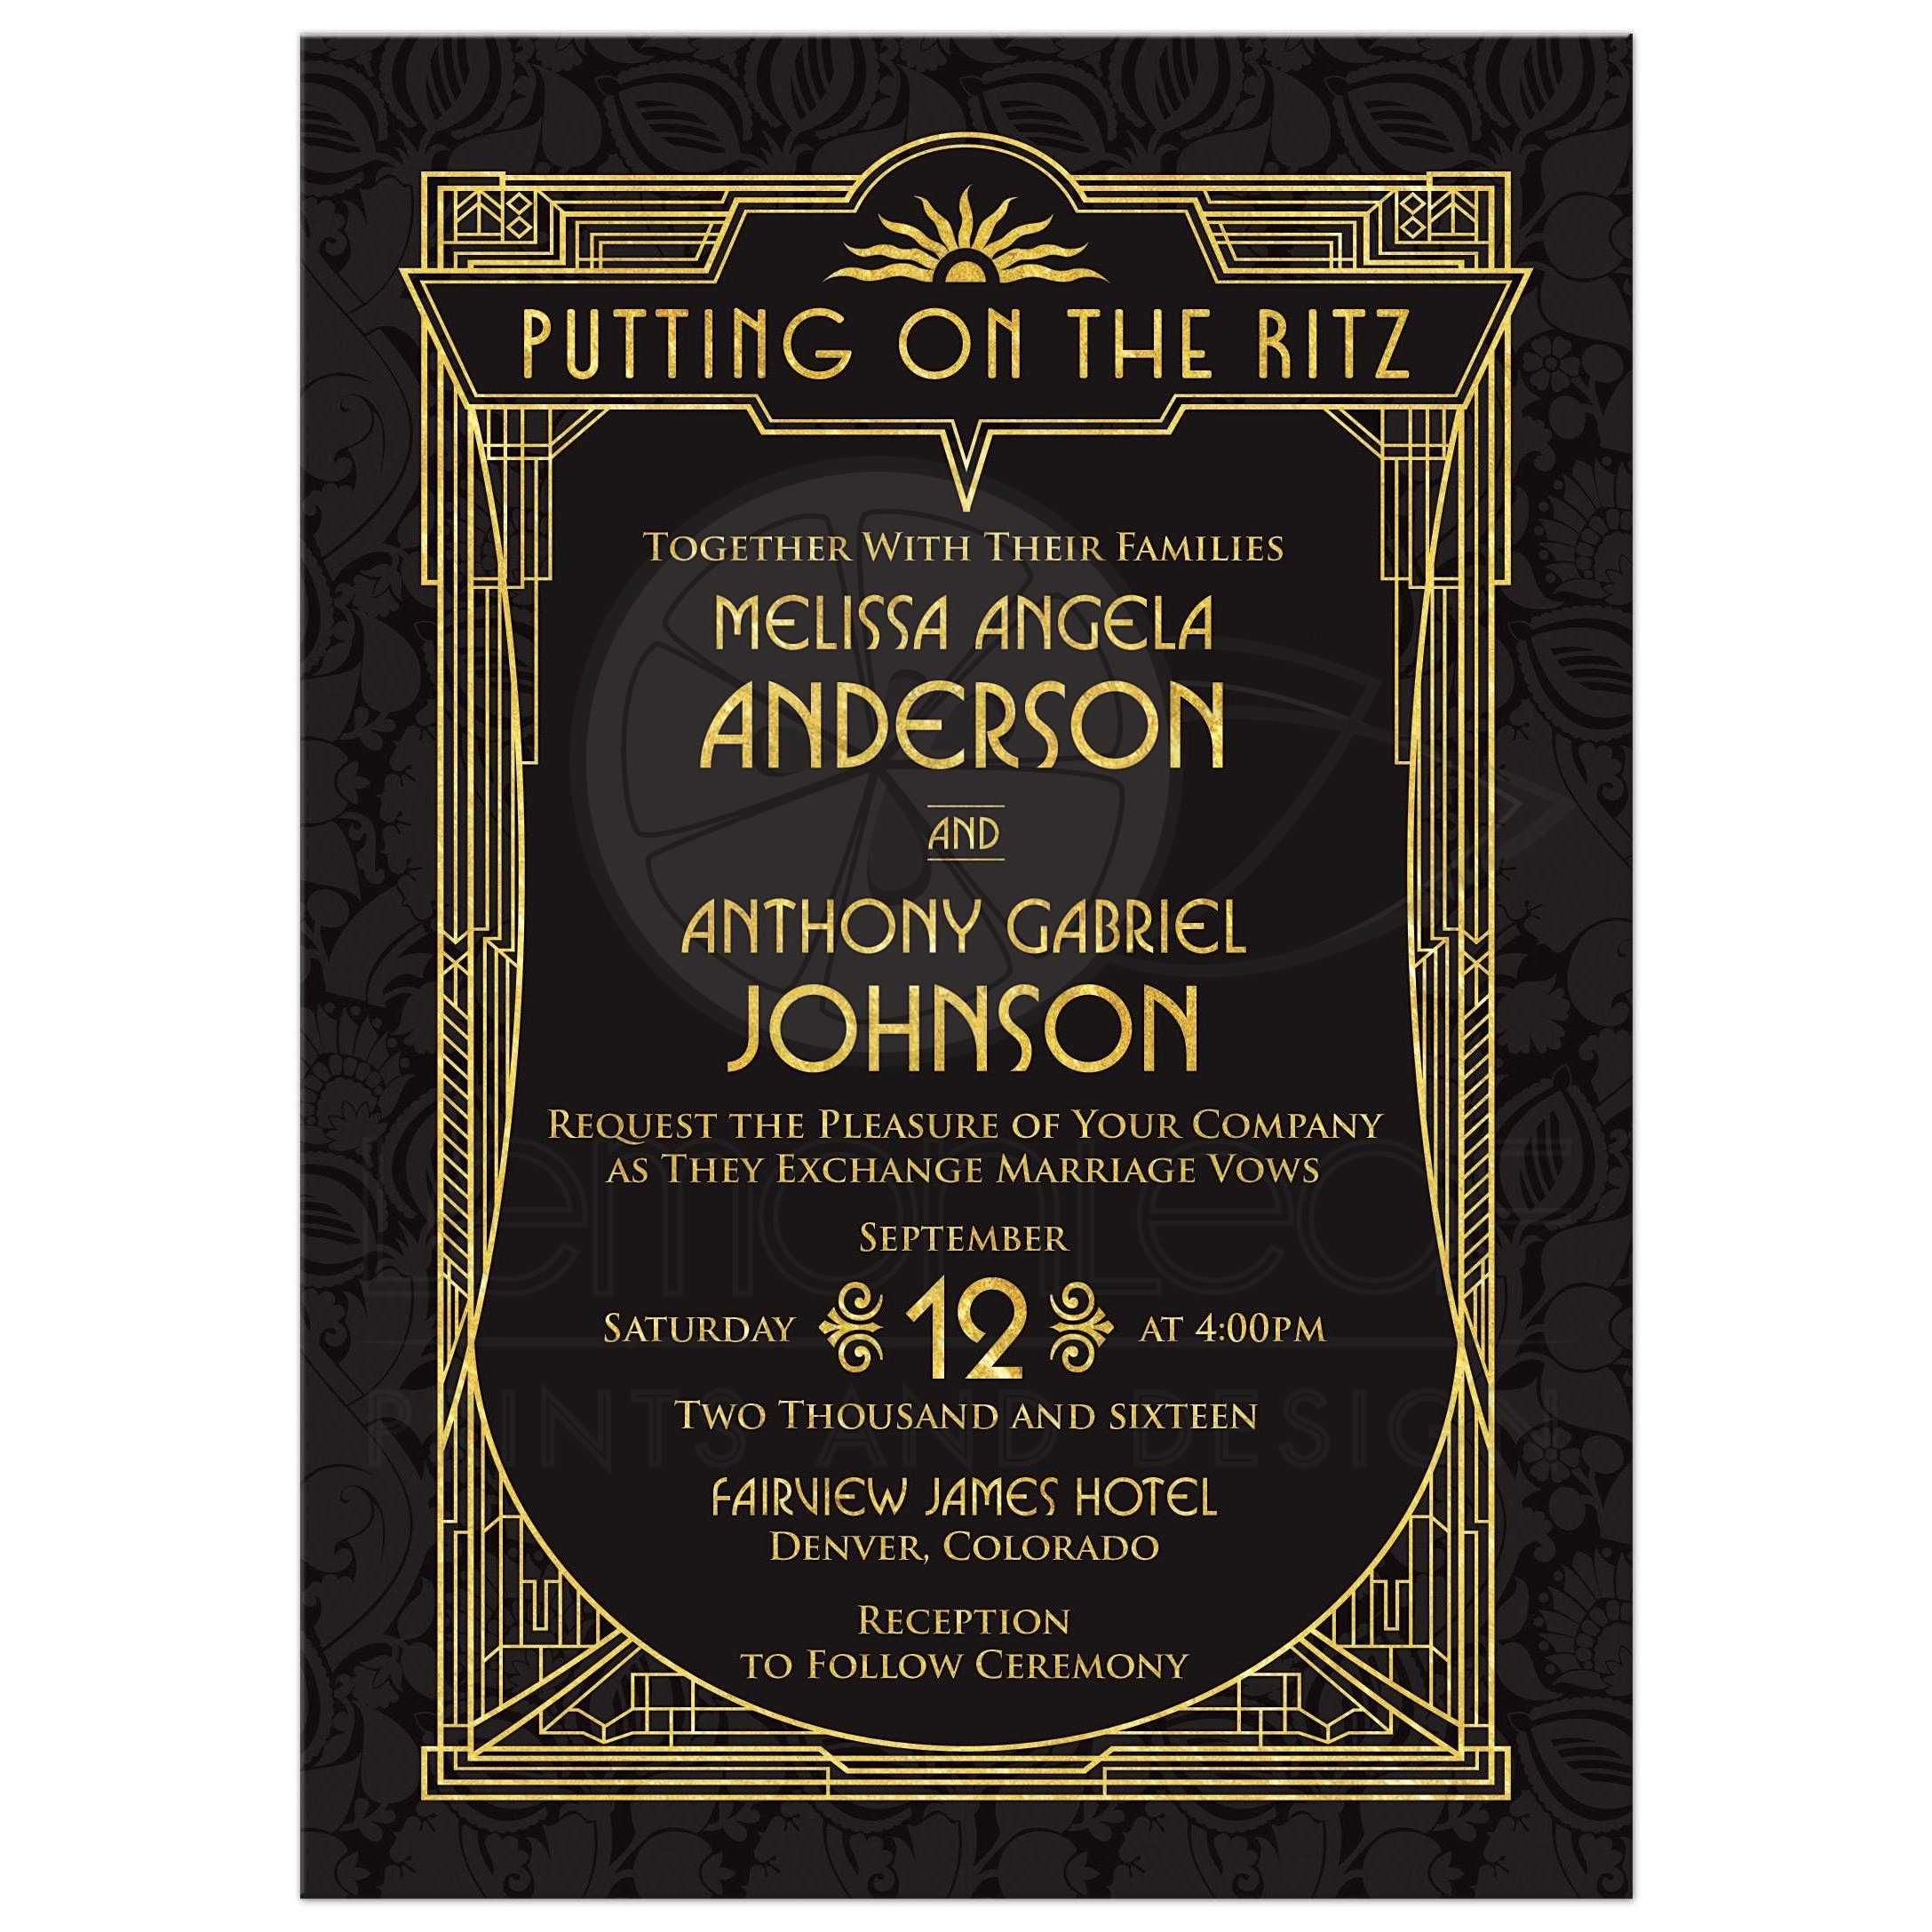 Art Deco Wedding Invitation Black Gold Roaring 20s Gatsby Style Art Deco Wedding Invitations Deco Wedding Invitations Art Deco Wedding Save The Dates